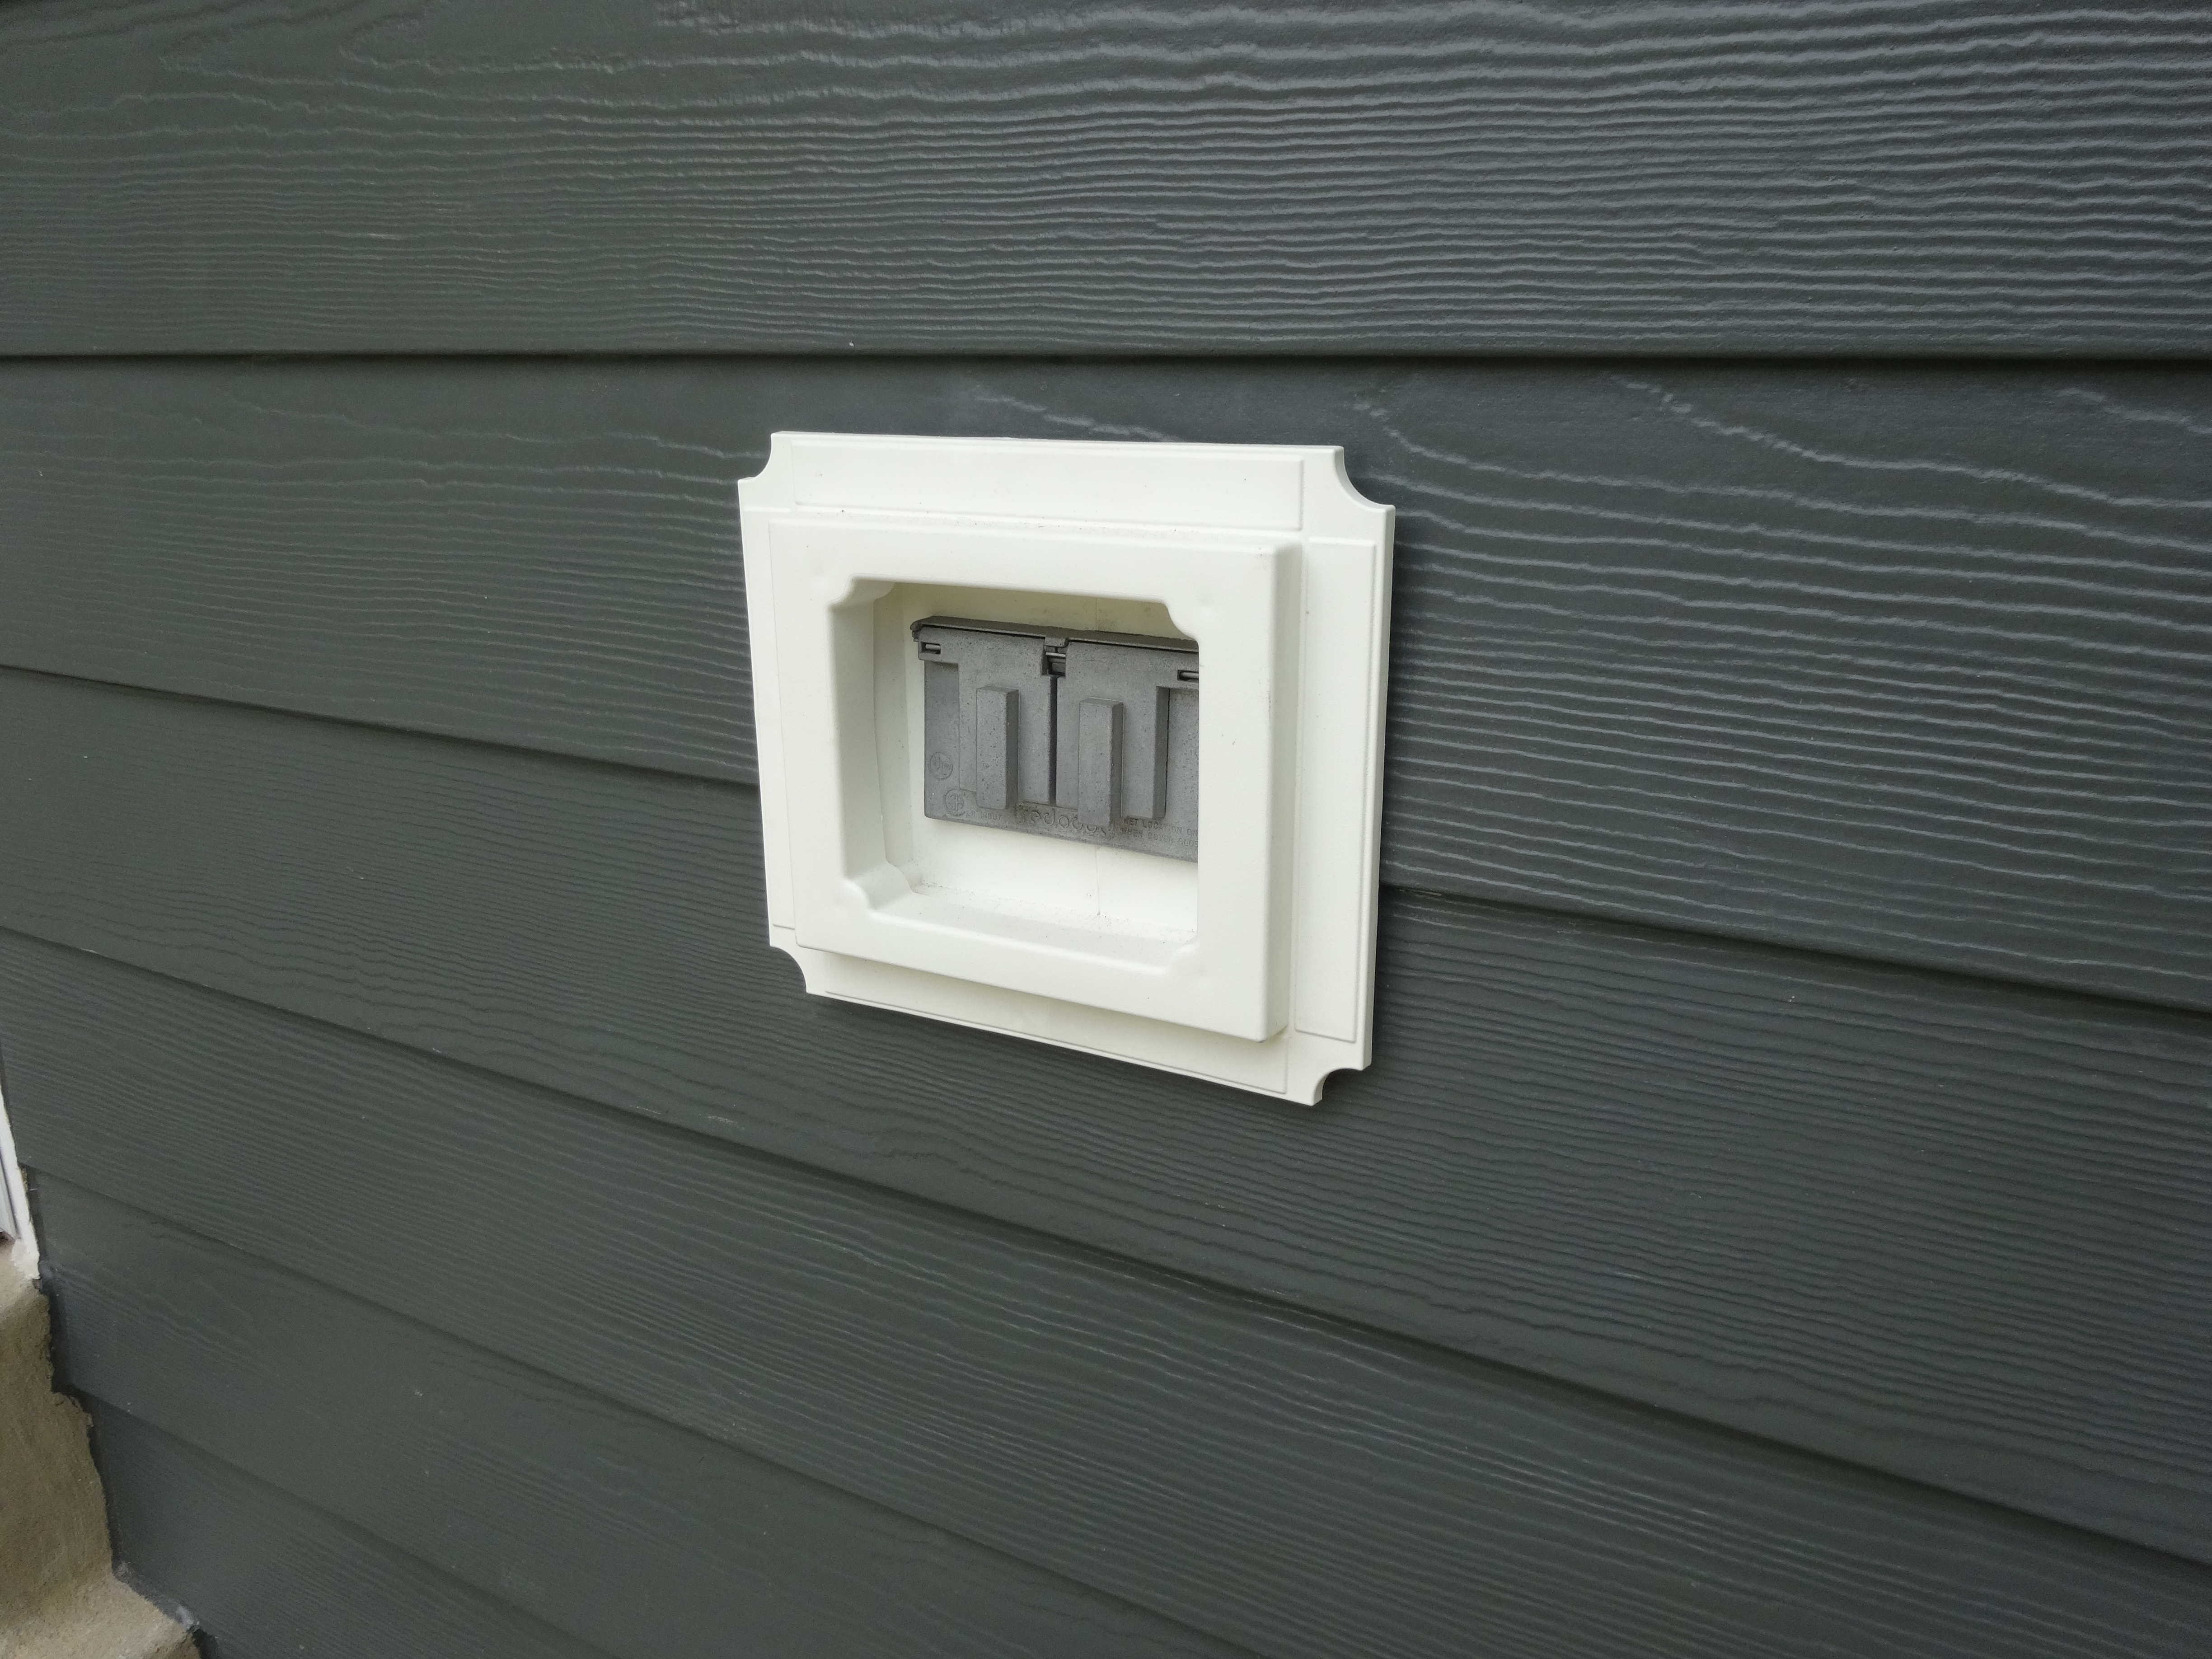 Recessed Blocks Sit Within The Siding And Do Not Stick Out Much Like Lighting A Home Allow You To Insert Things Such As An Electrical